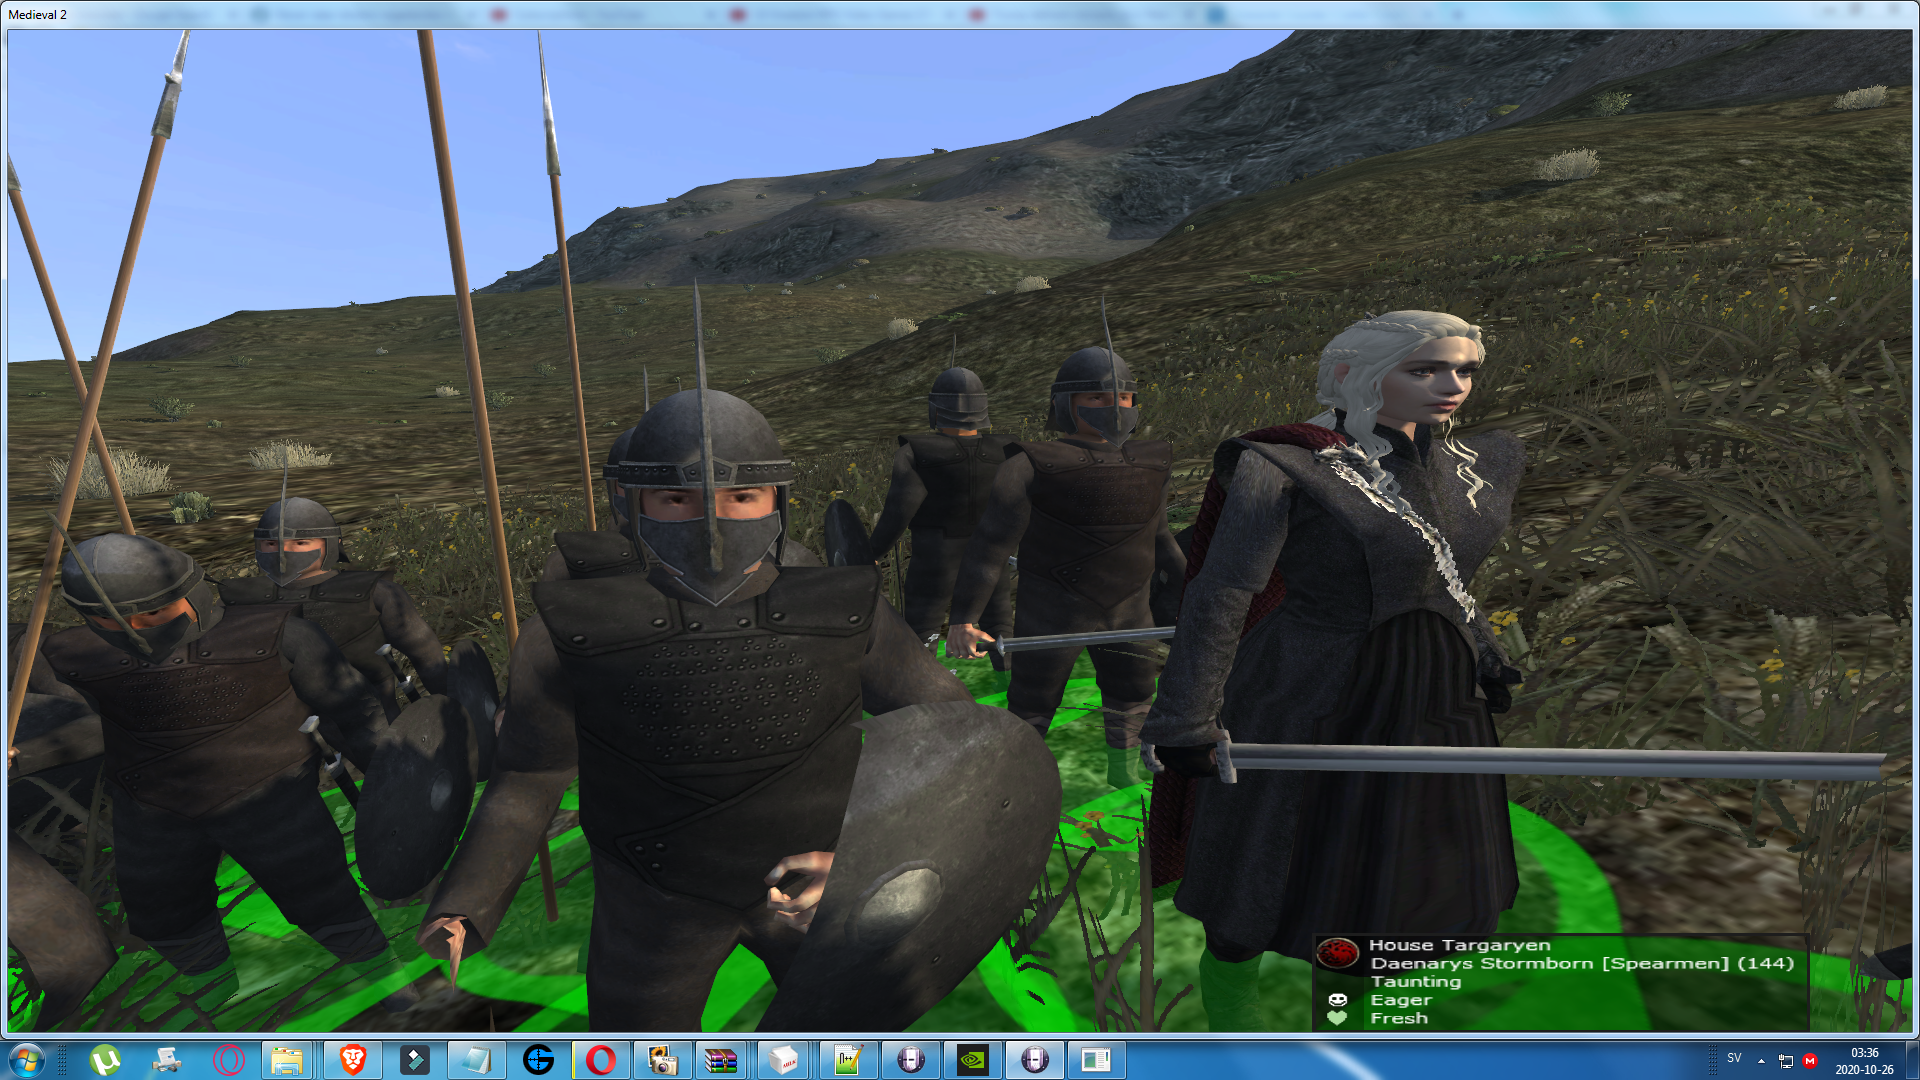 Daenarys Targaryen in the custom battles will be dismounted!